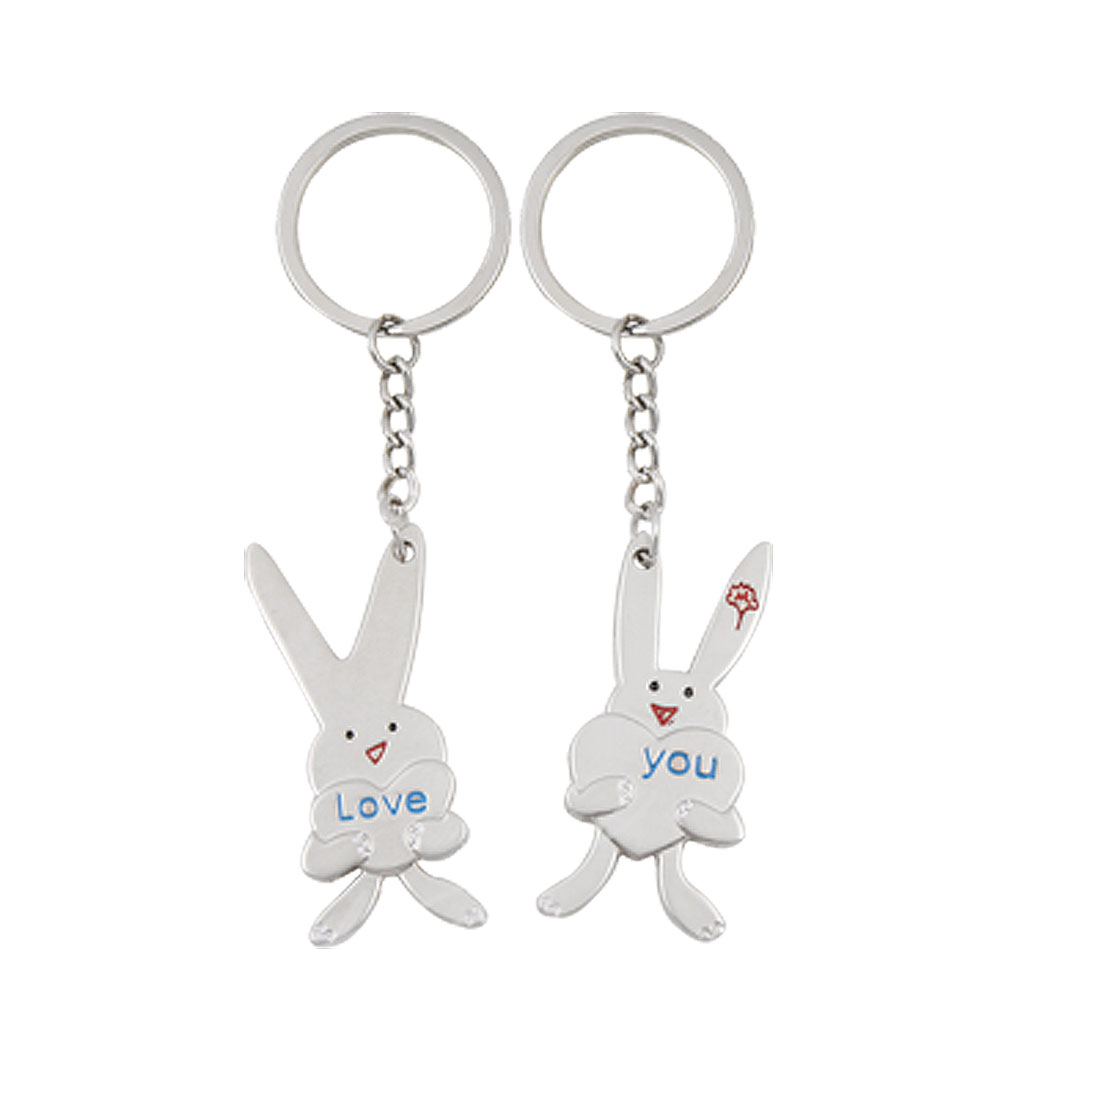 Metal Rabbit Shaped Pendant Lovers Pair Key Chain